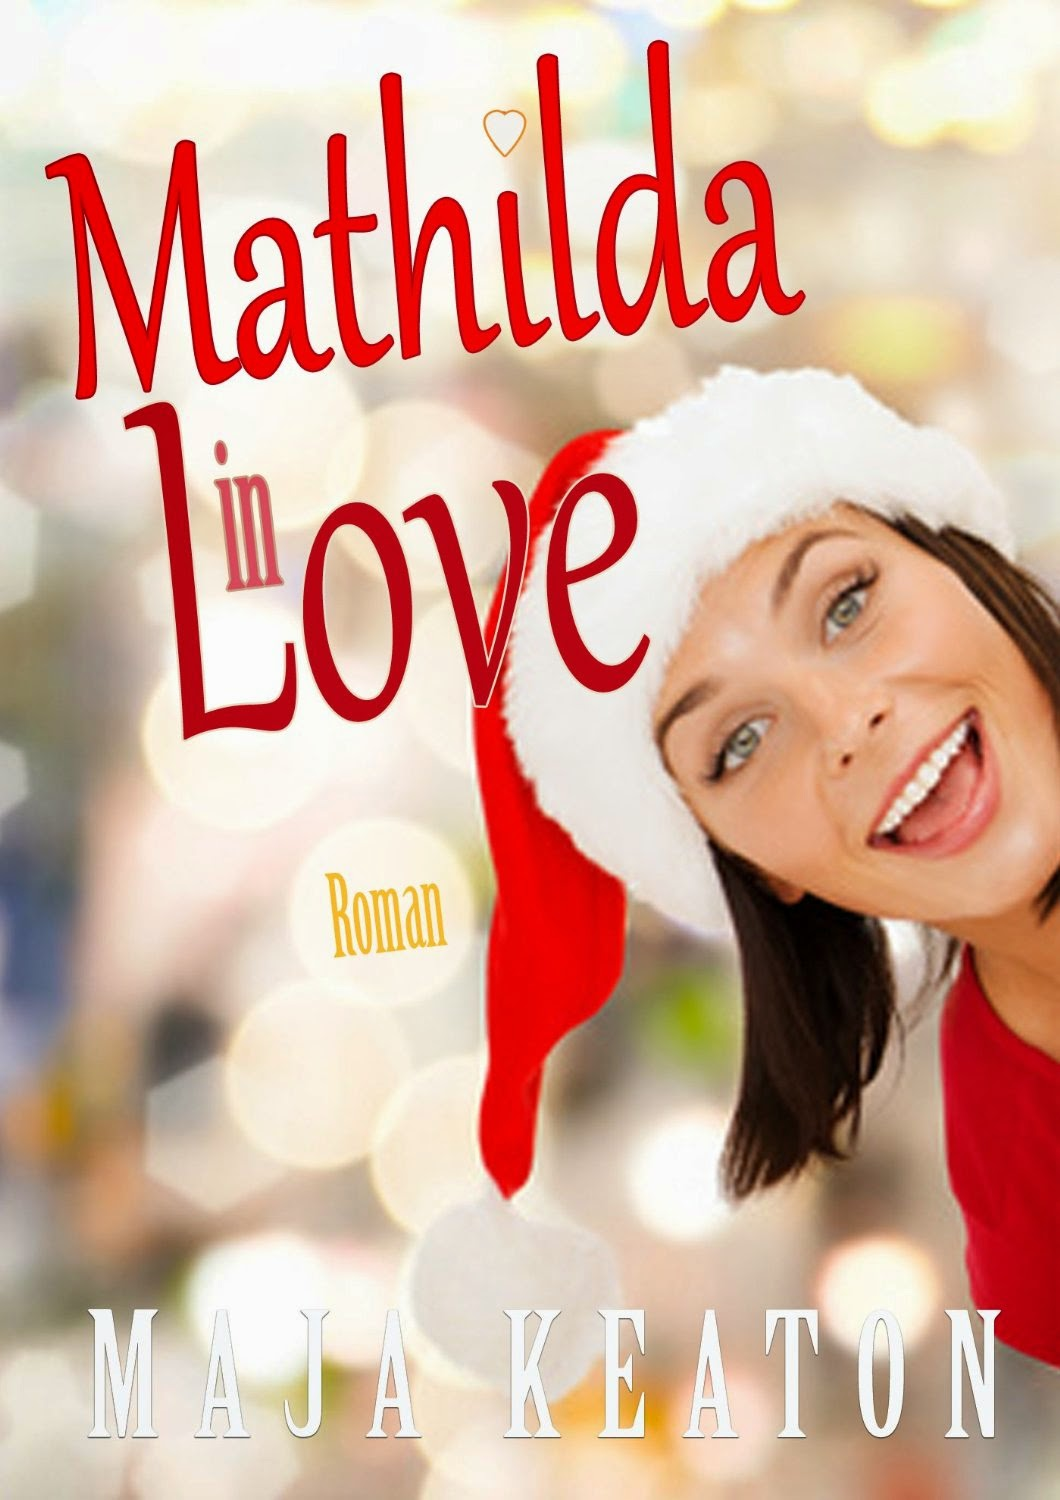 http://www.amazon.de/Mathilda-Love-Liebesroman-Maja-Keaton-ebook/dp/B00QIEAK8Y/ref=sr_1_1_twi_1?ie=UTF8&qid=1421507771&sr=8-1&keywords=mathilda+in+love